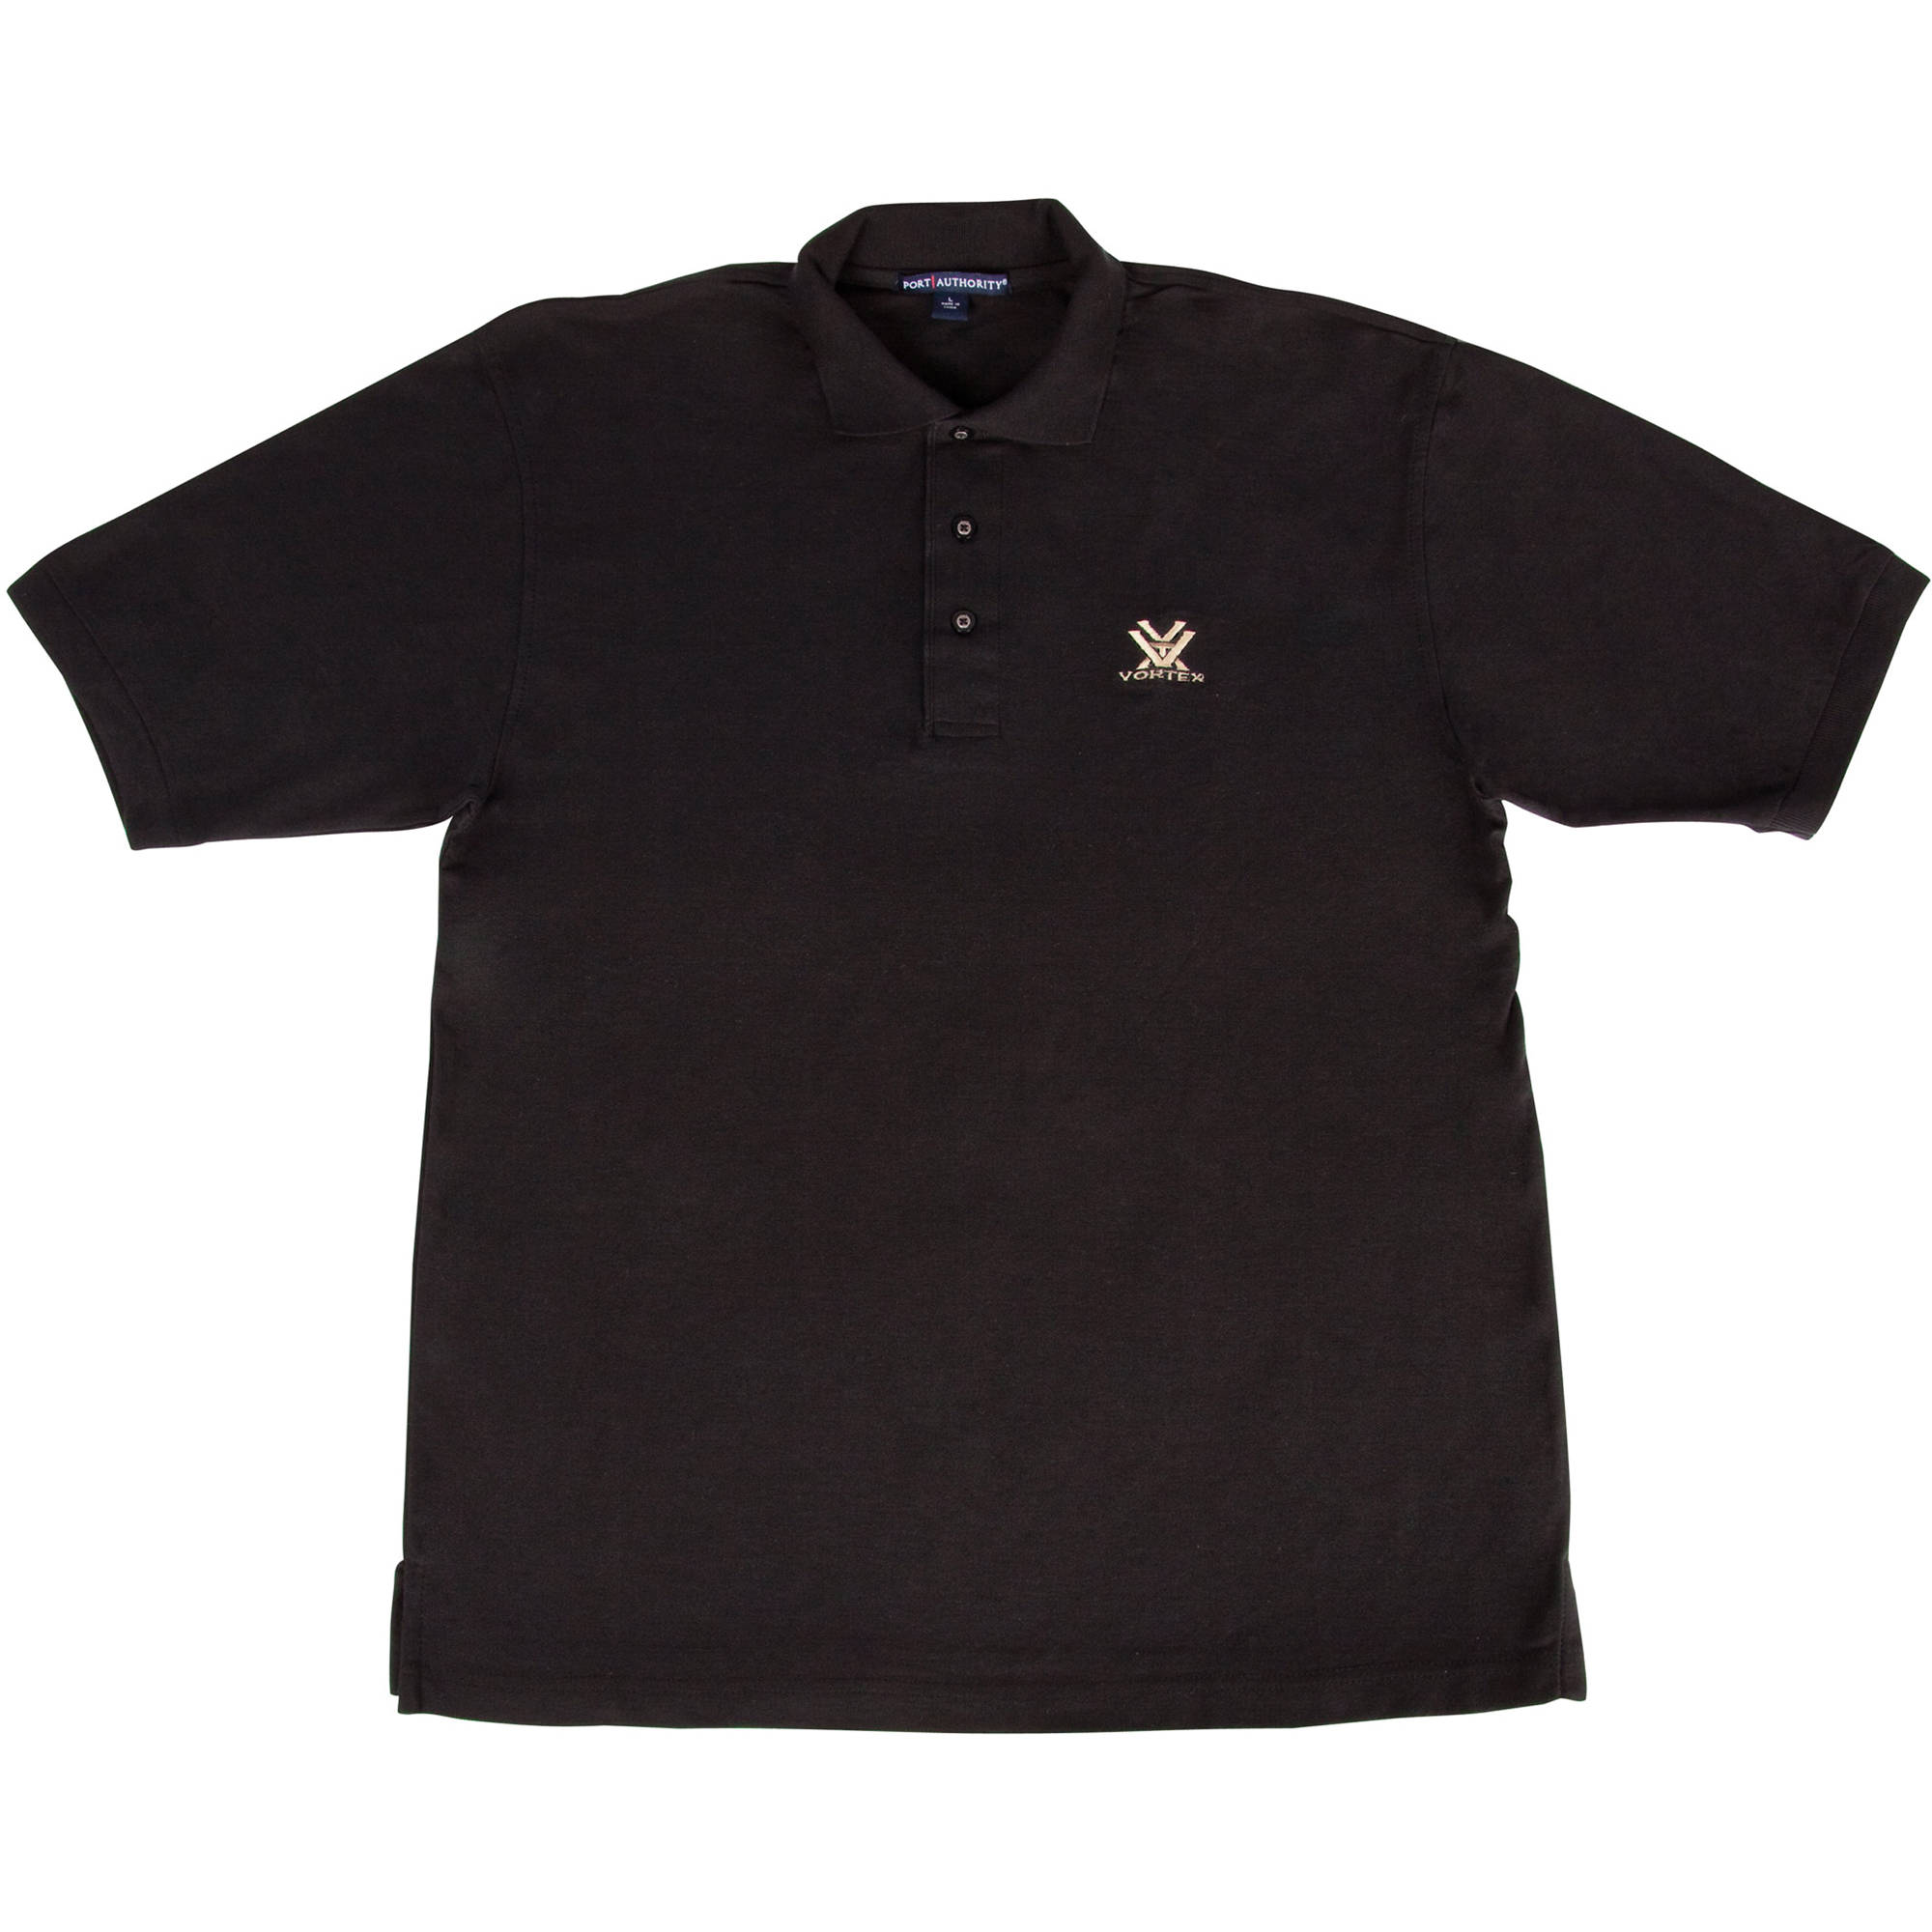 vortex black polo shirt xxxl k500 blk xxxl b h photo video. Black Bedroom Furniture Sets. Home Design Ideas